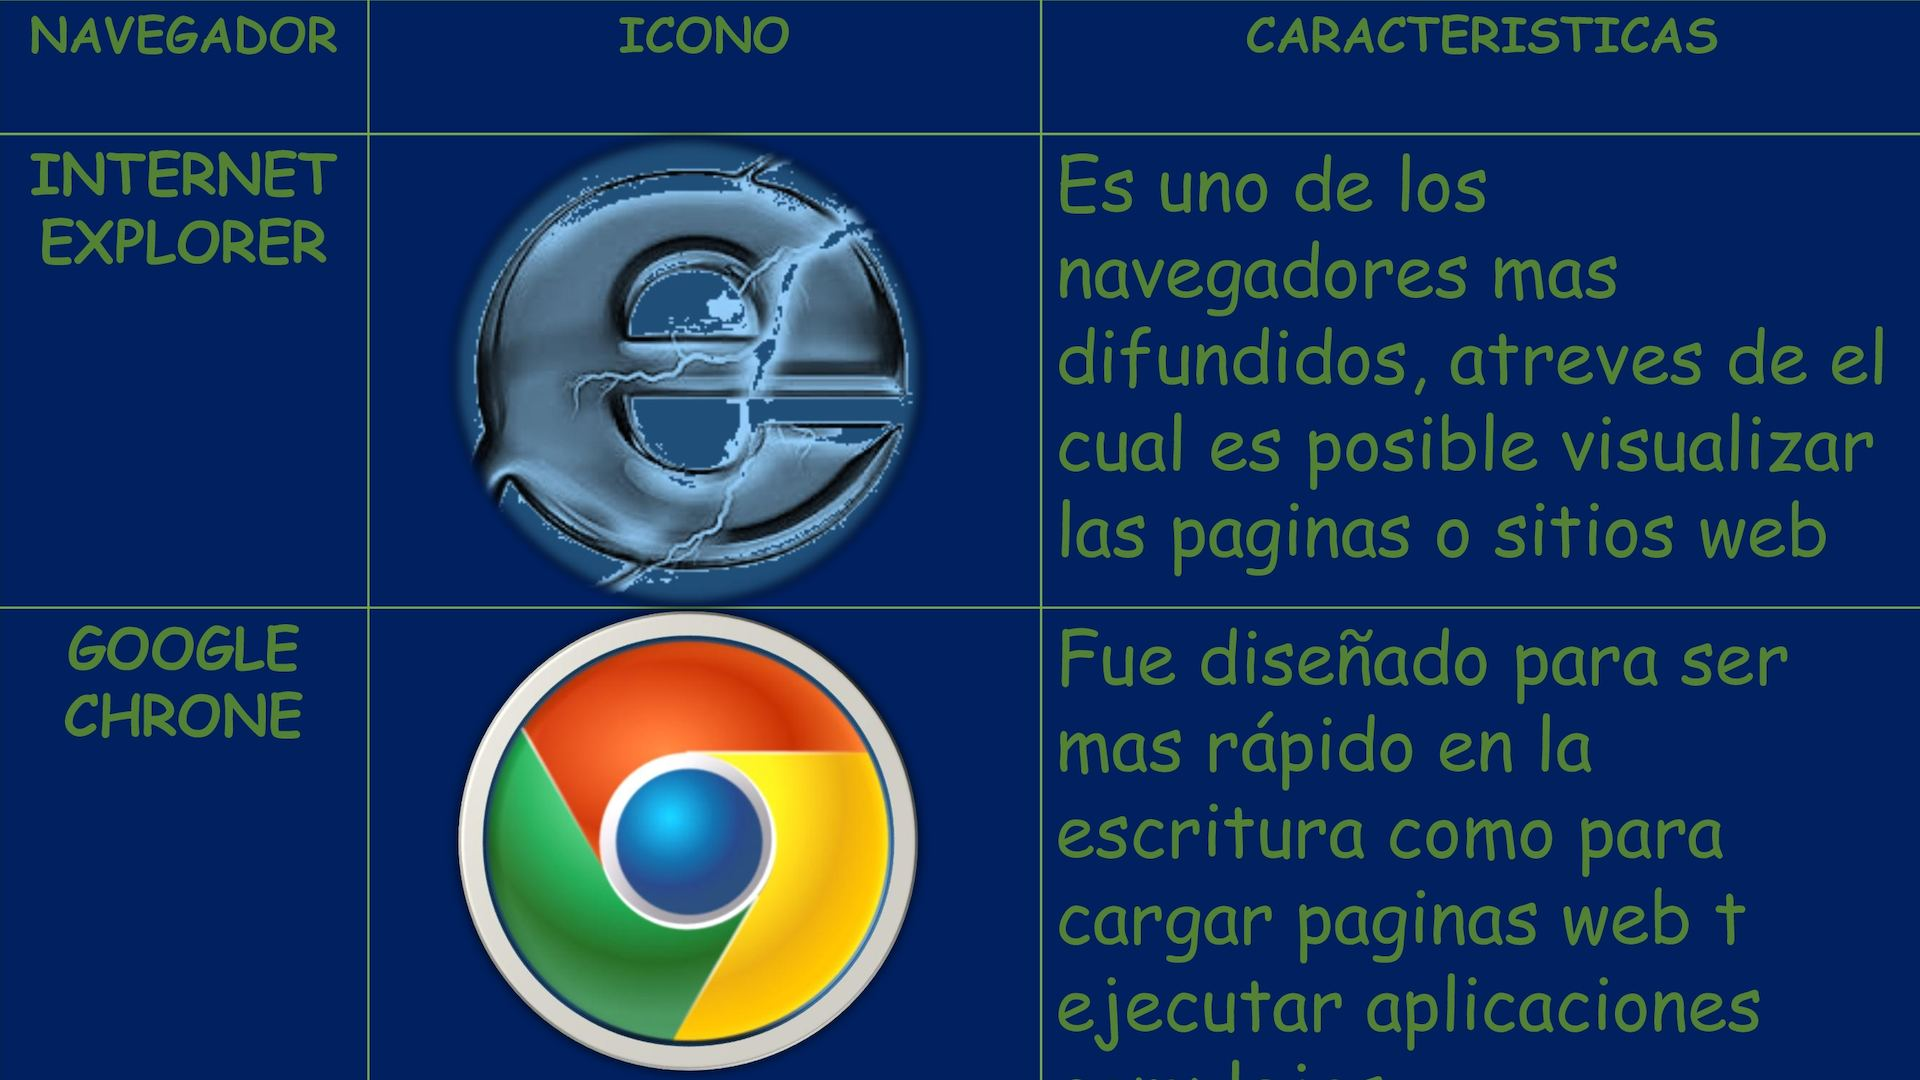 Internet explorer latest version for windows 8 peterfosl us